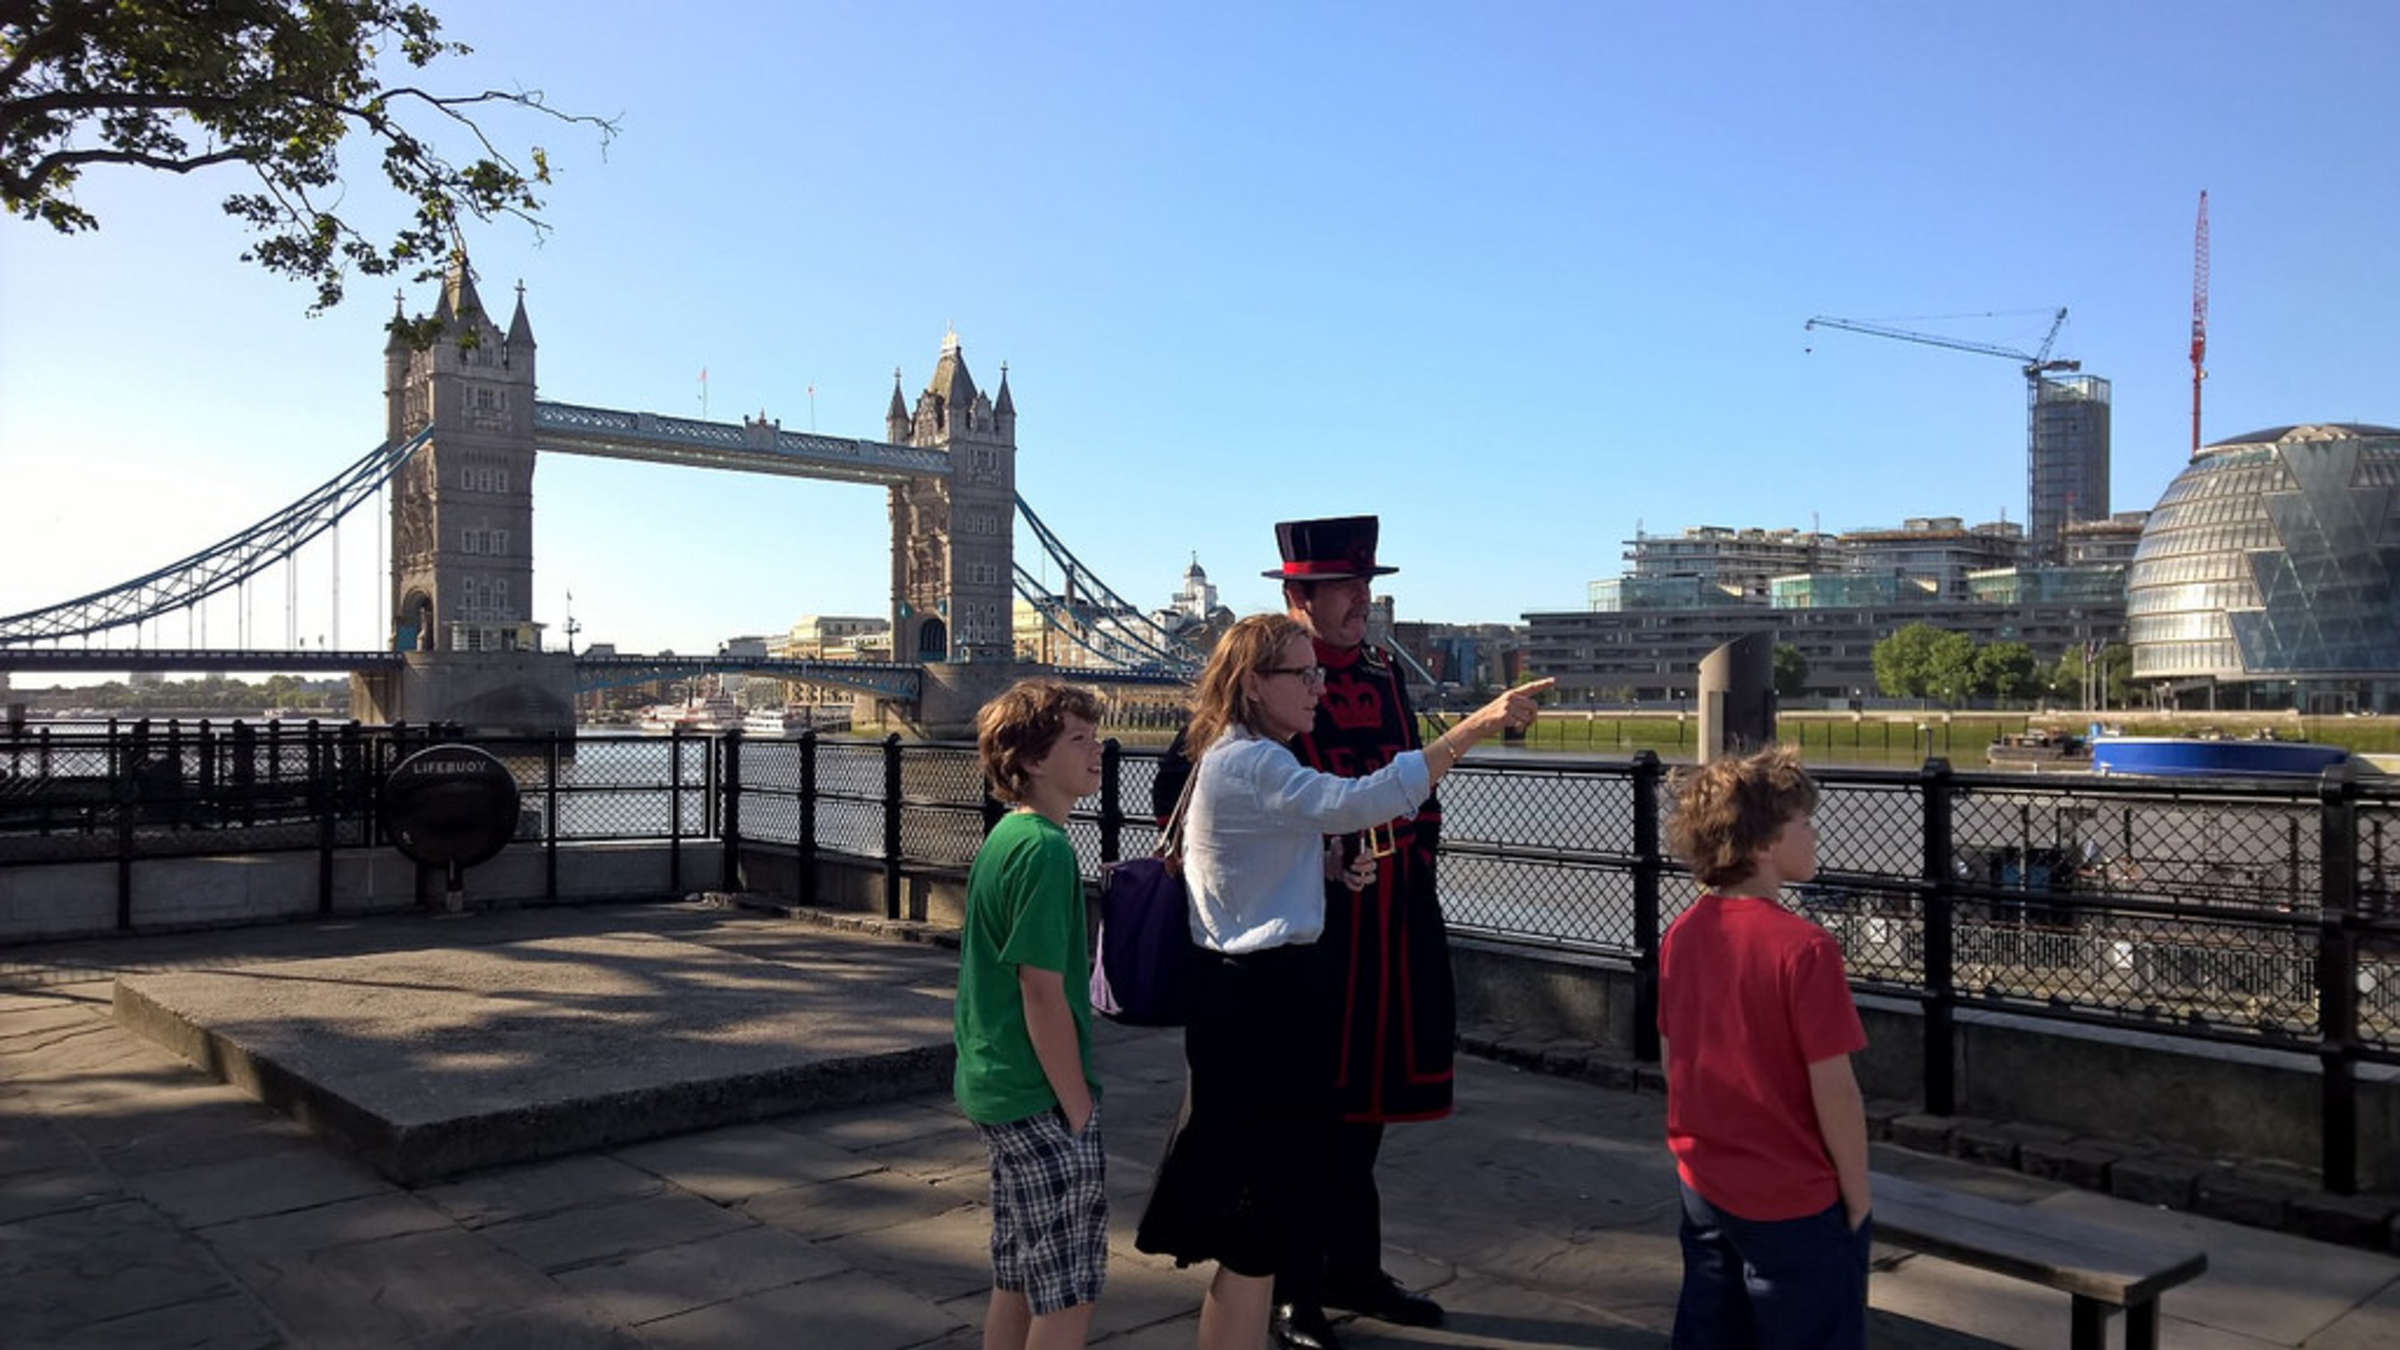 Tower Of London Tour For Kids A Guided Tour For The